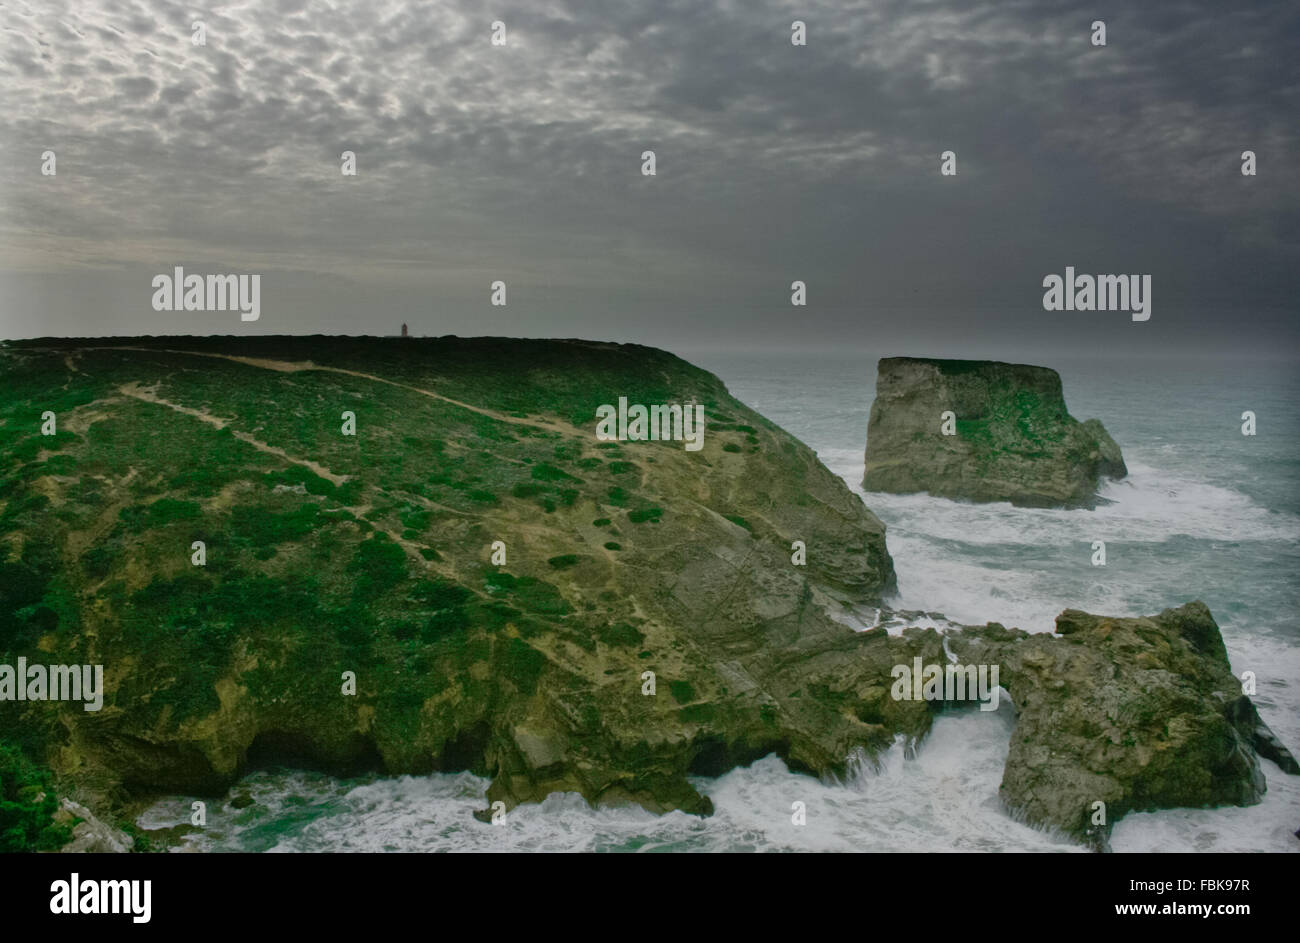 Stormy sunset at Saint Vicent cliffs, Algarve, Portugal Stock Photo